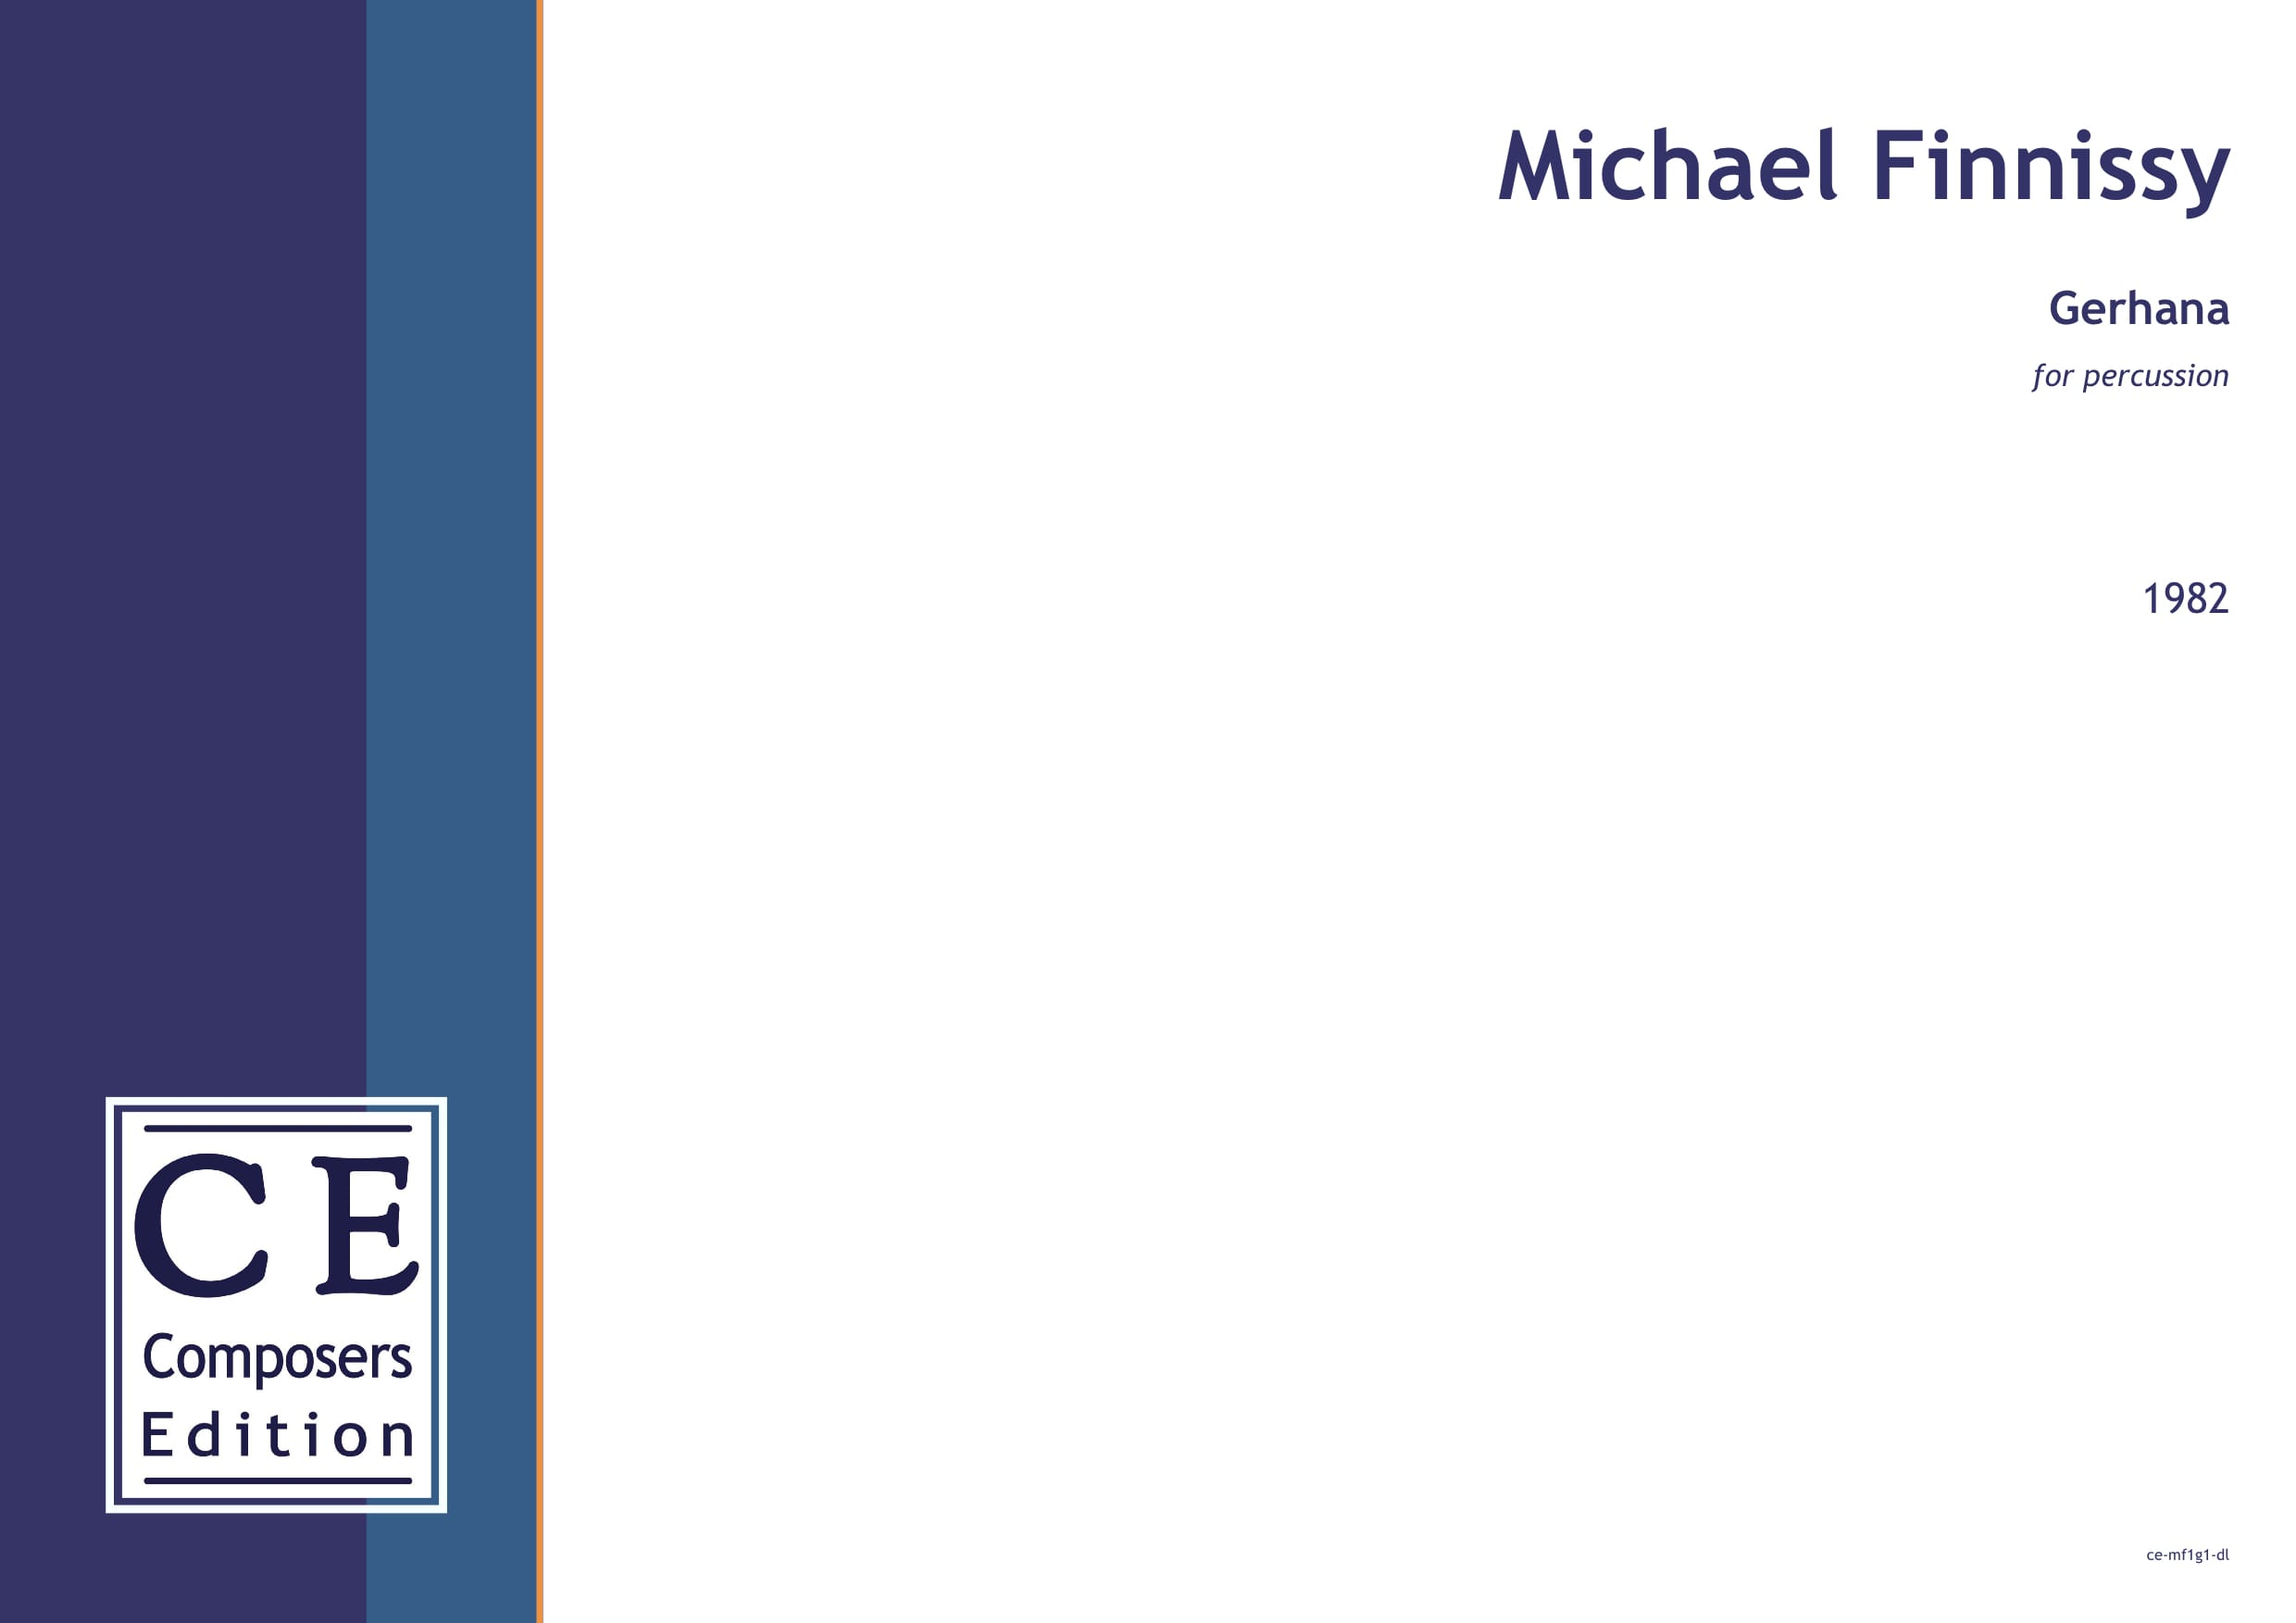 Michael Finnissy: Gerhana for percussion